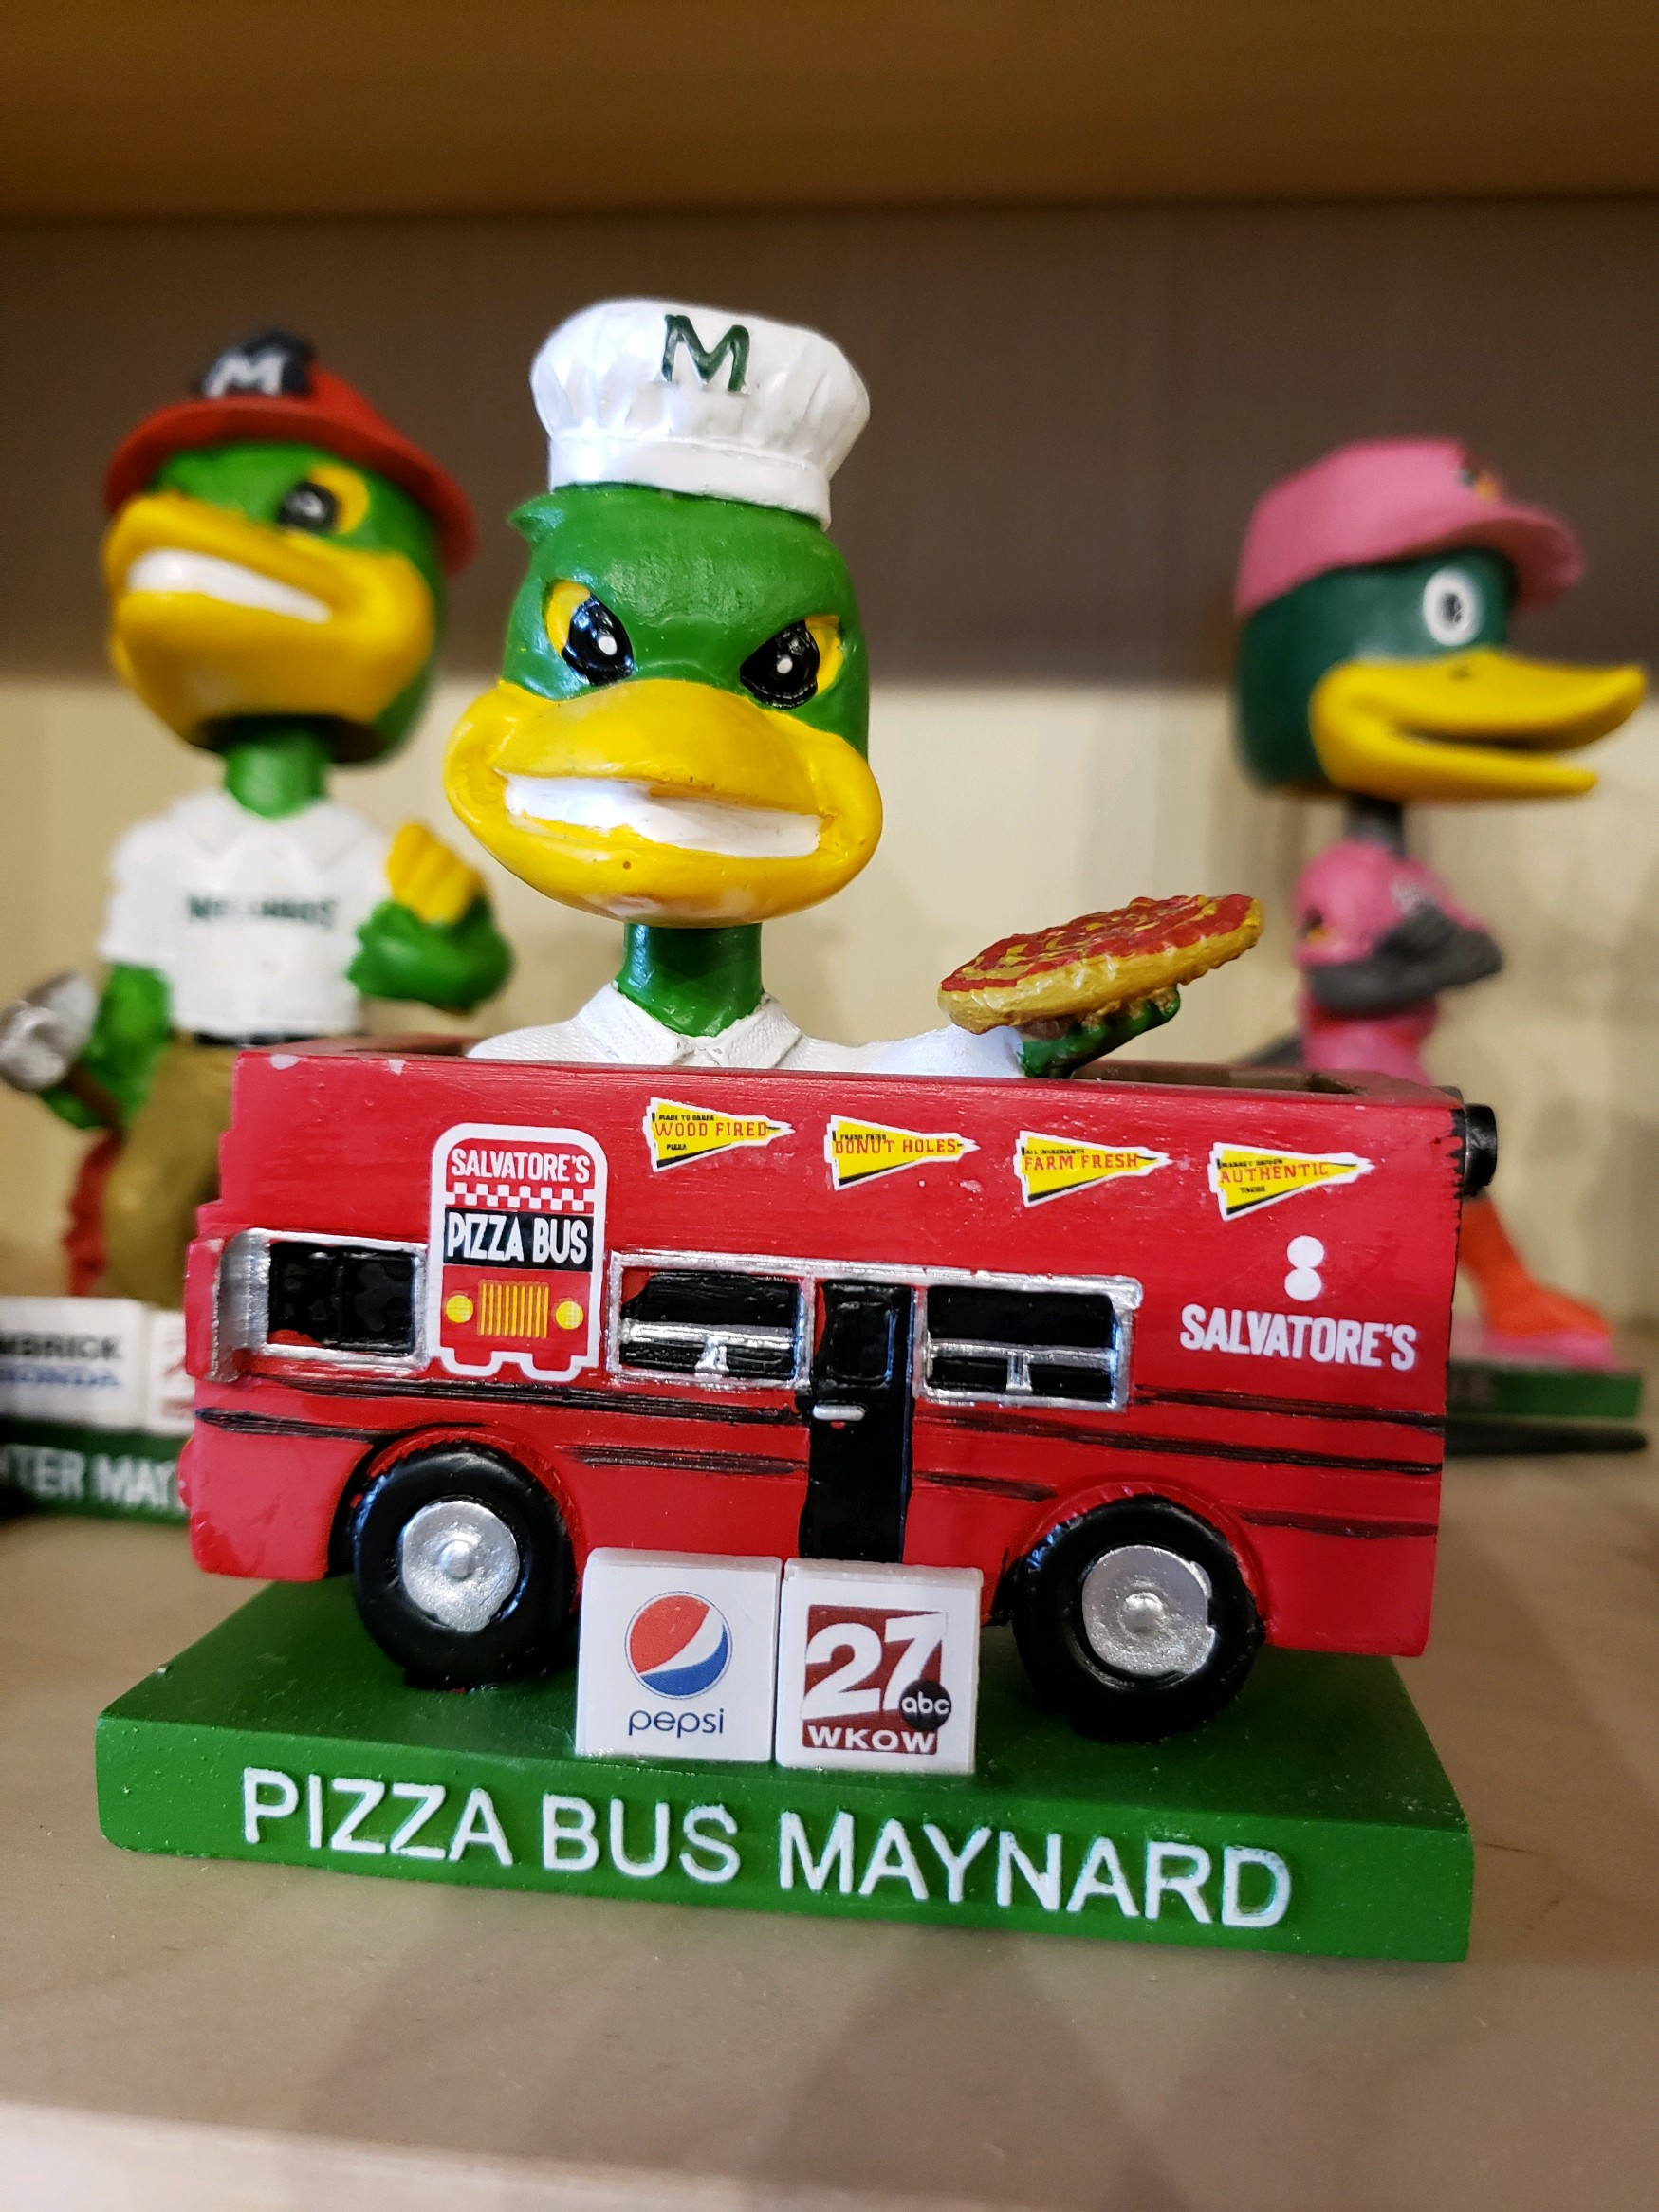 Really Maynard? I think there is only room for one Pizza Bus in this town!